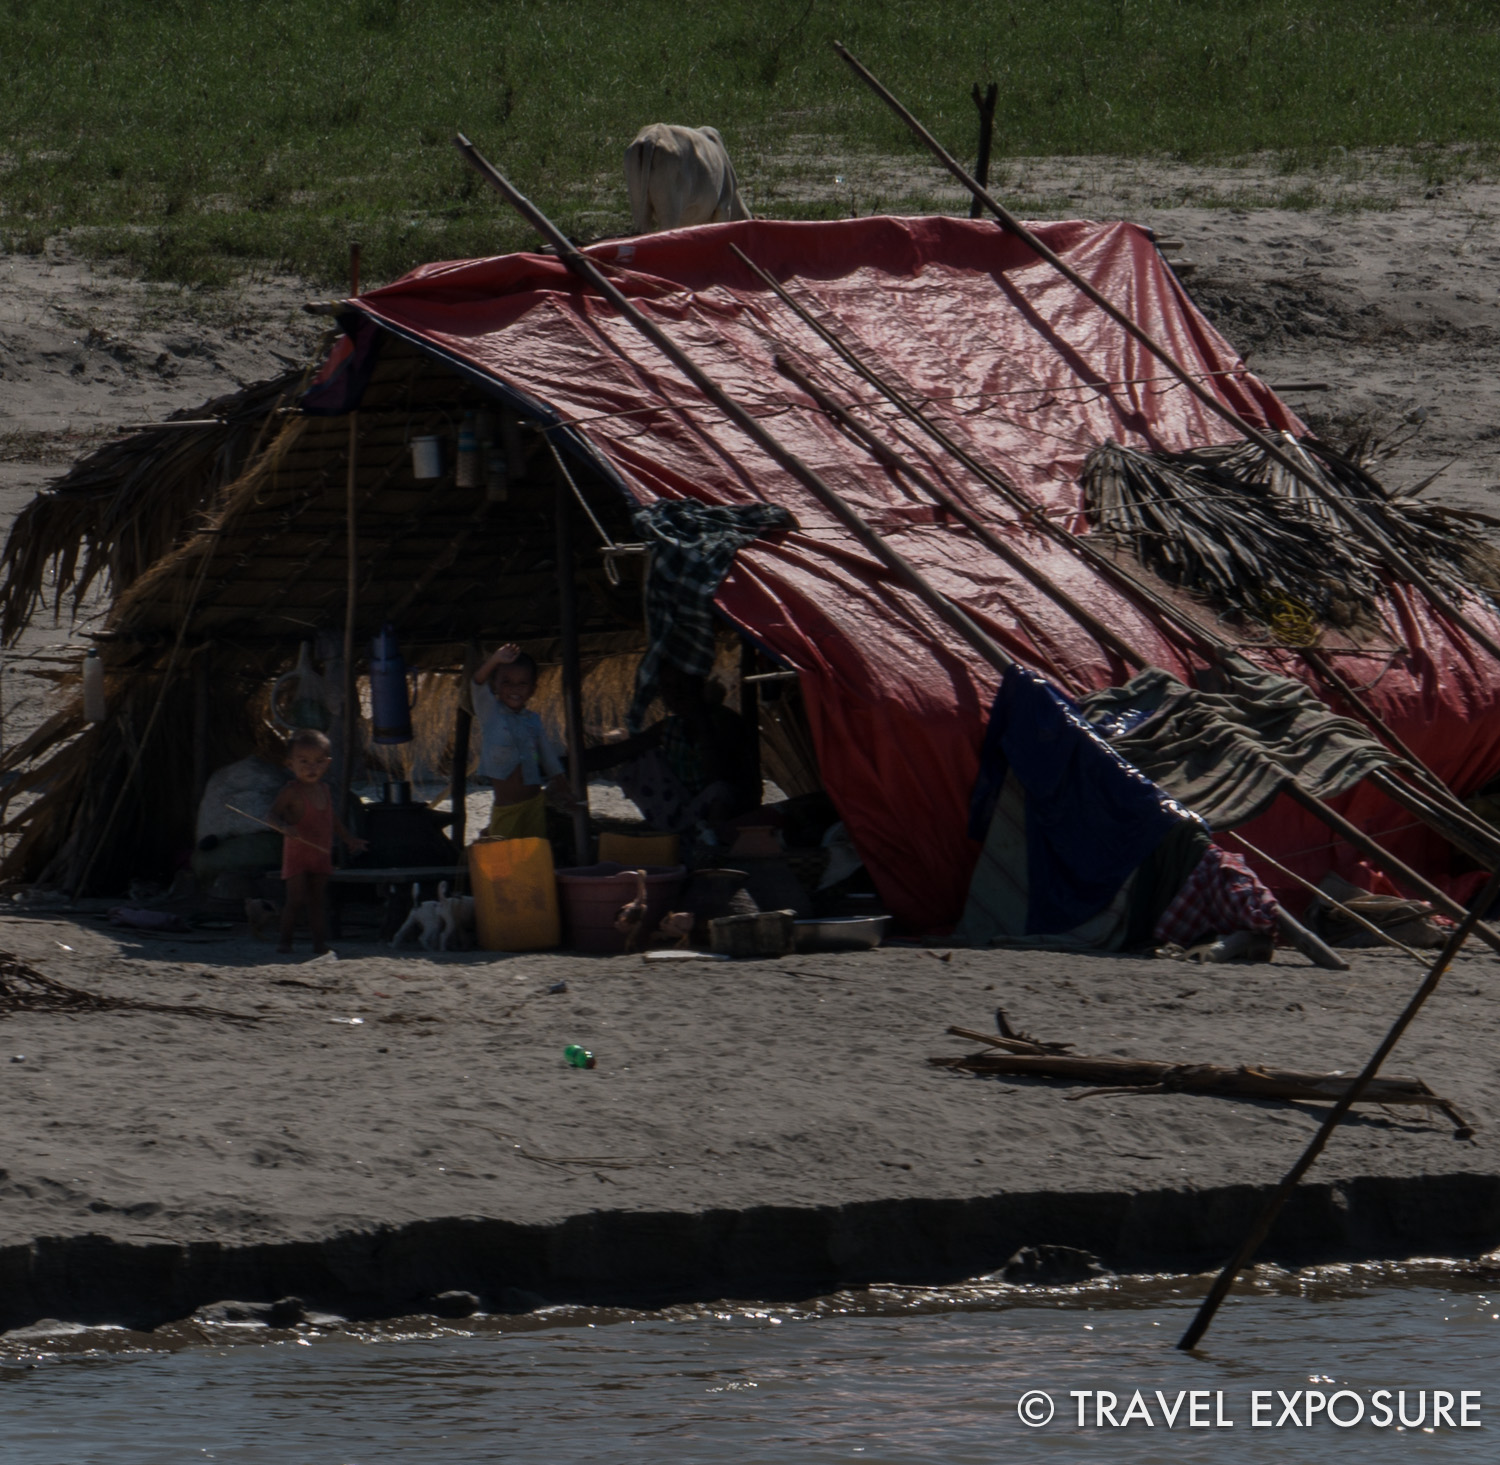 Life on the Irrawaddy River.